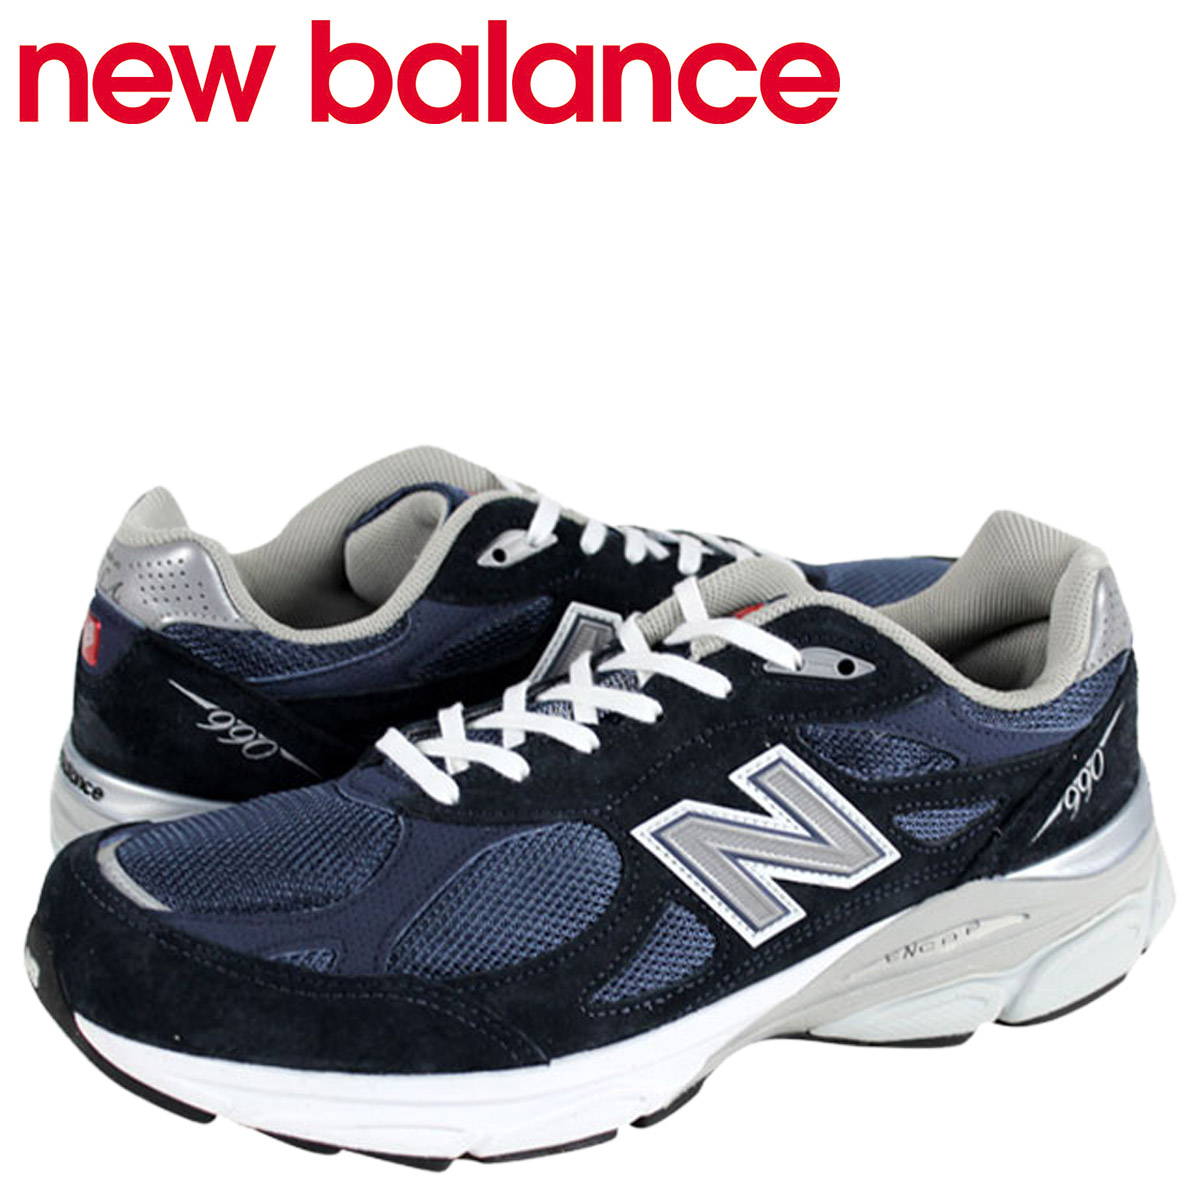 check out 342f4 261eb New Balance new balance 990 M990 NV3 MADE IN USA sneakers M990NV3 D Wise  men shoes navy